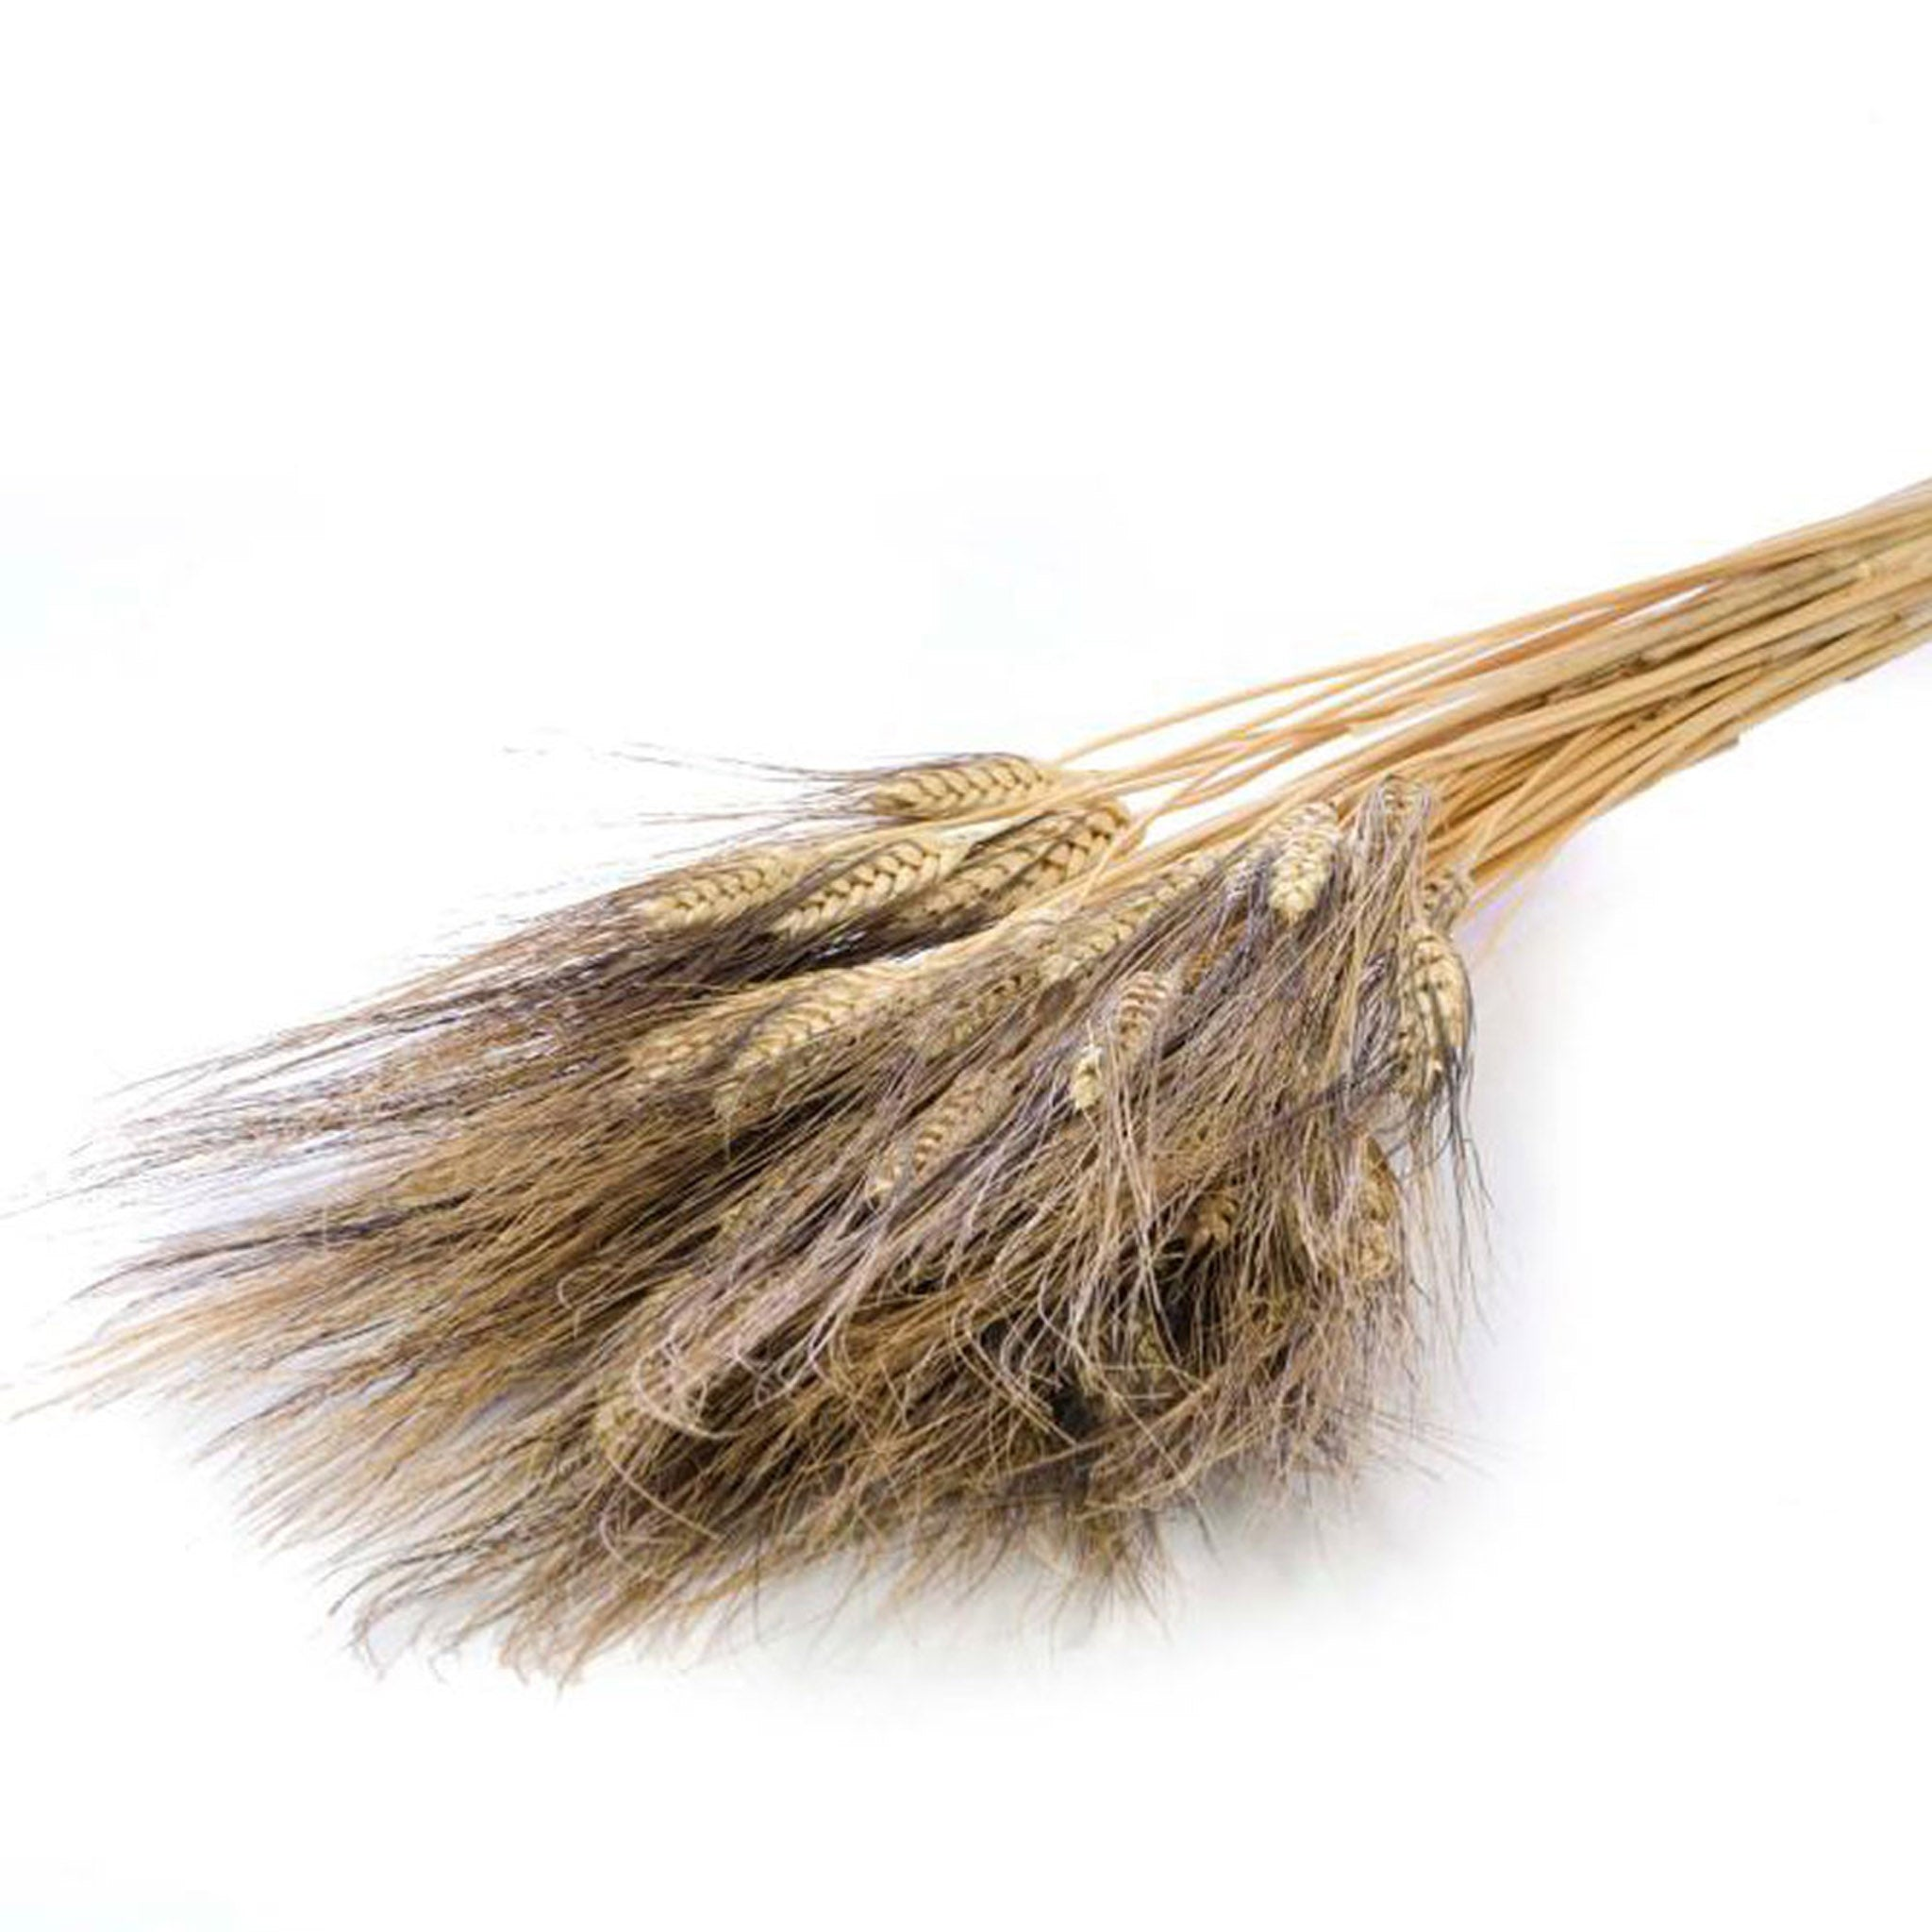 Dried Triticum 'Black Wisps' Natural Grass Bunch - Five And Dime